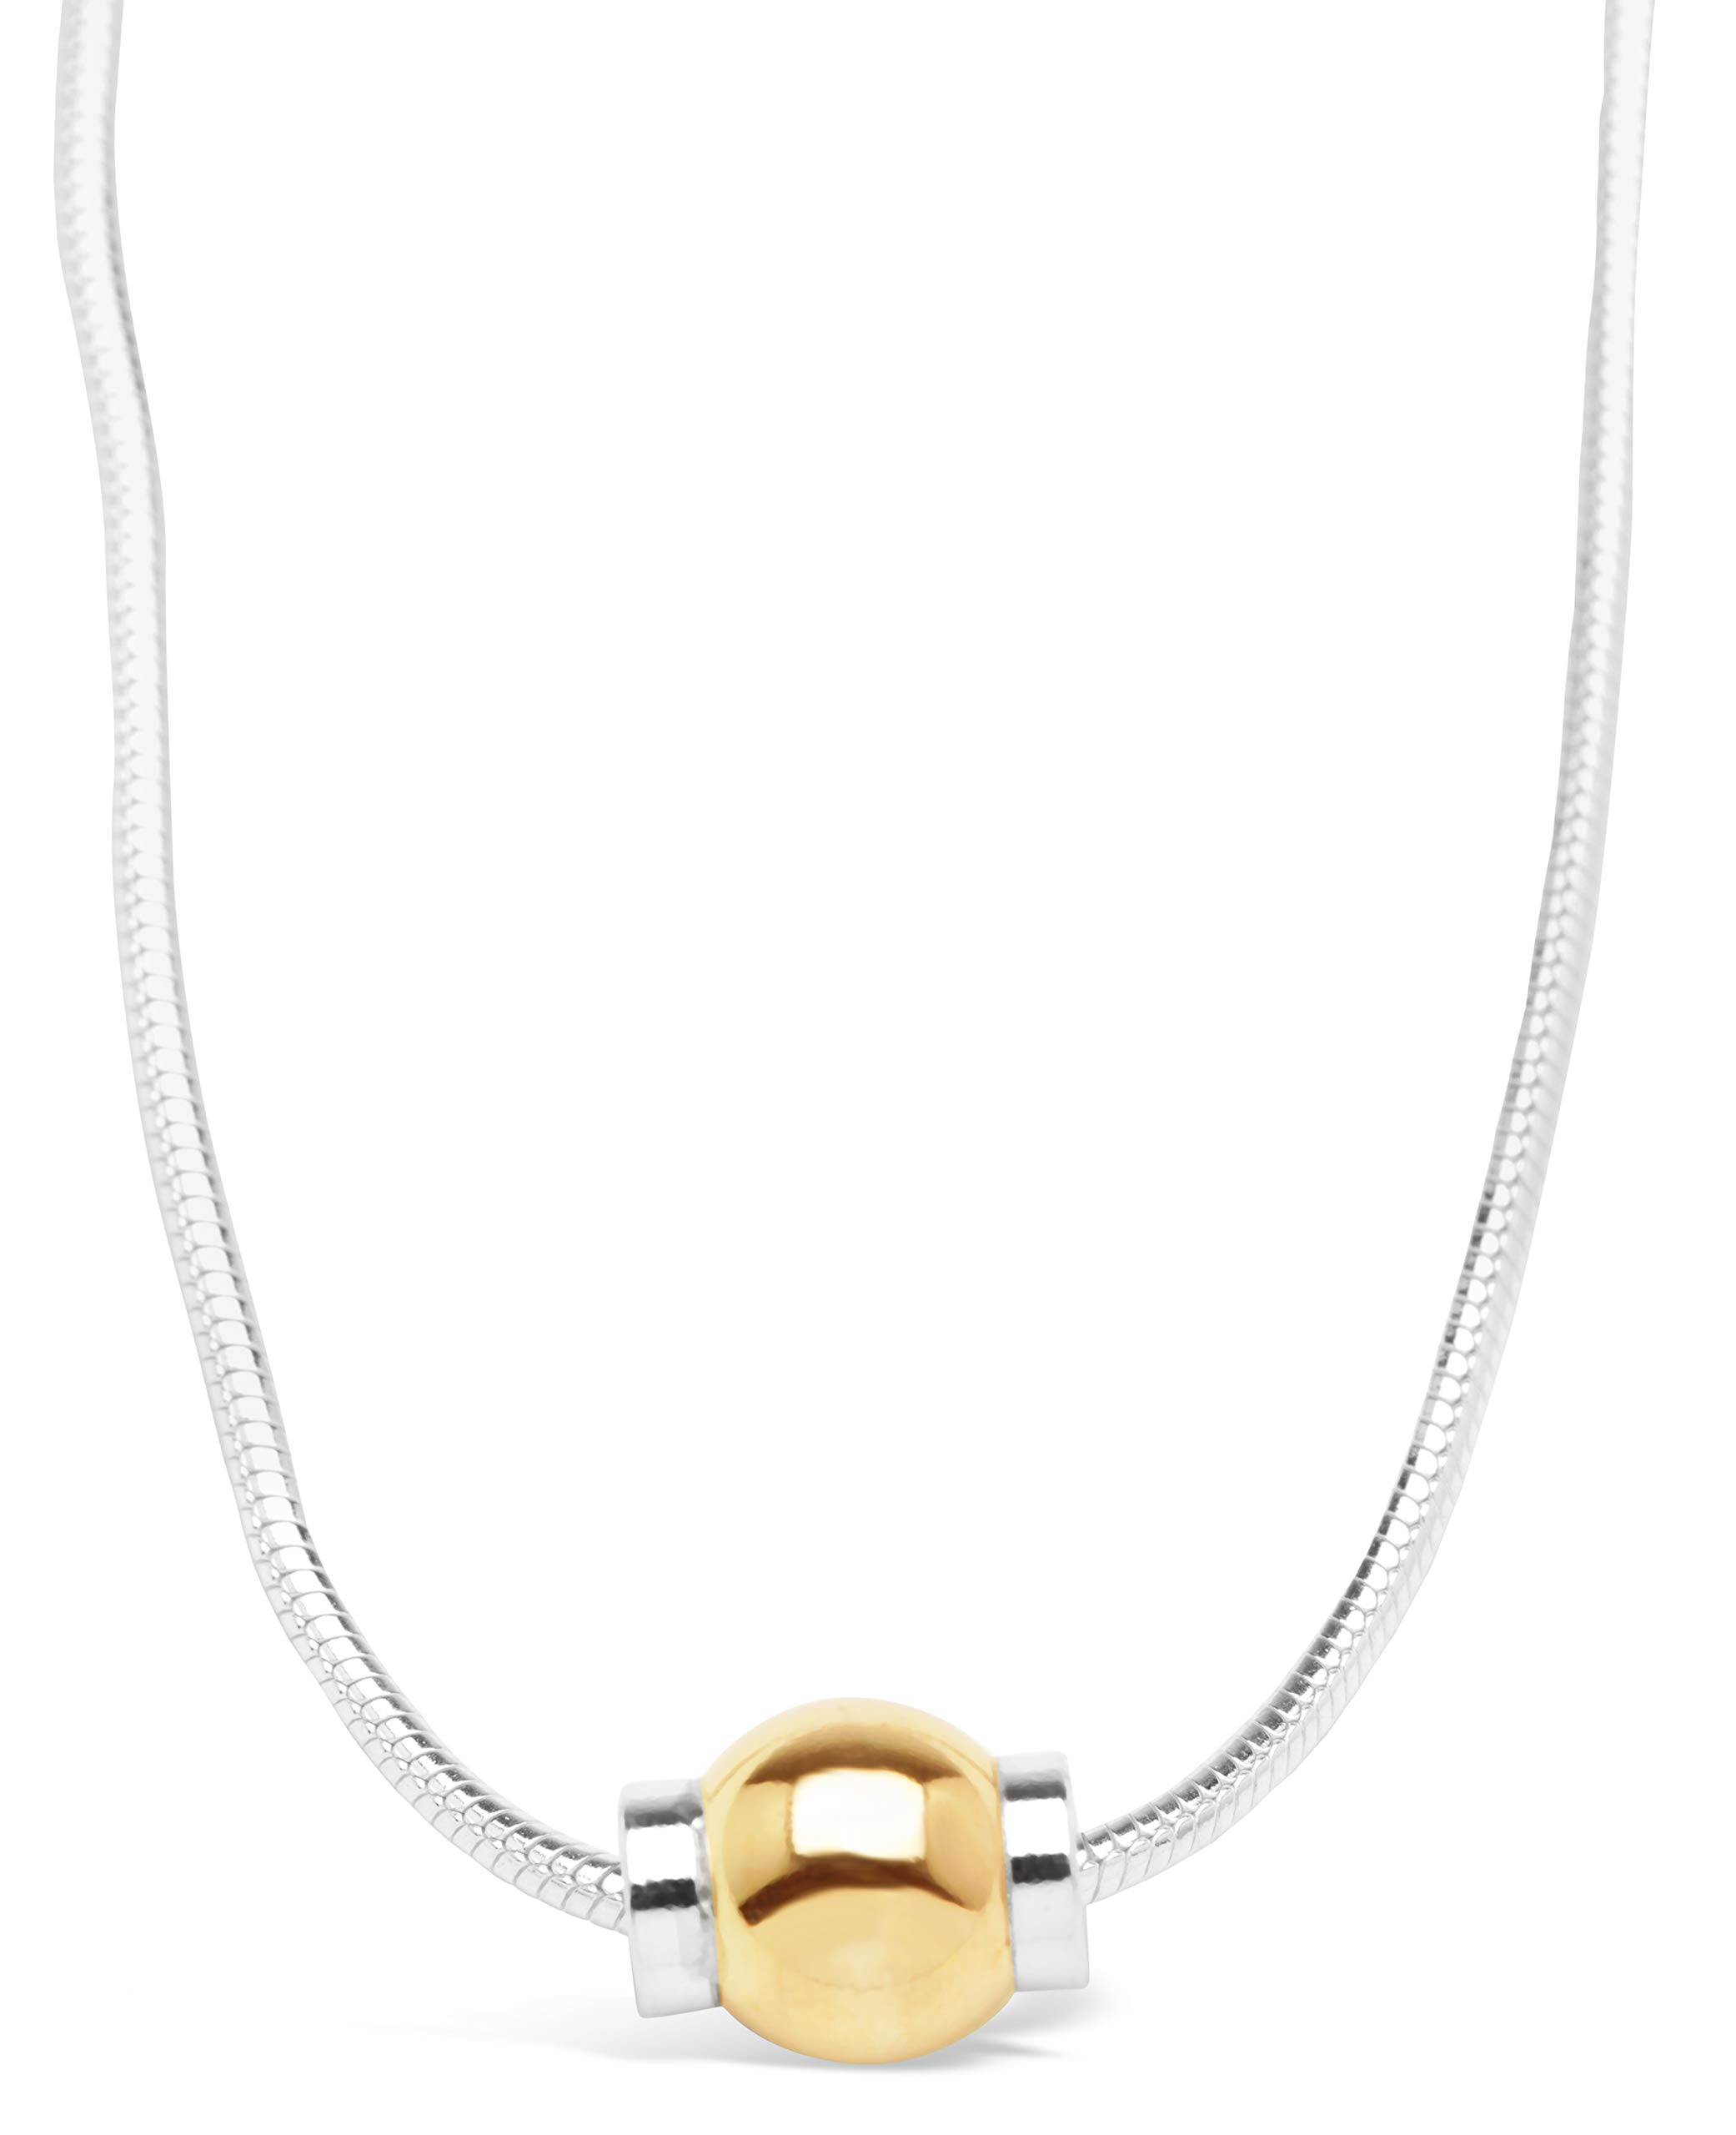 Michael's Jewelers-Provincetown Beach Ball Necklace from Cape Cod 925 Sterling Silver and 14k Solid Gold Ball (16)